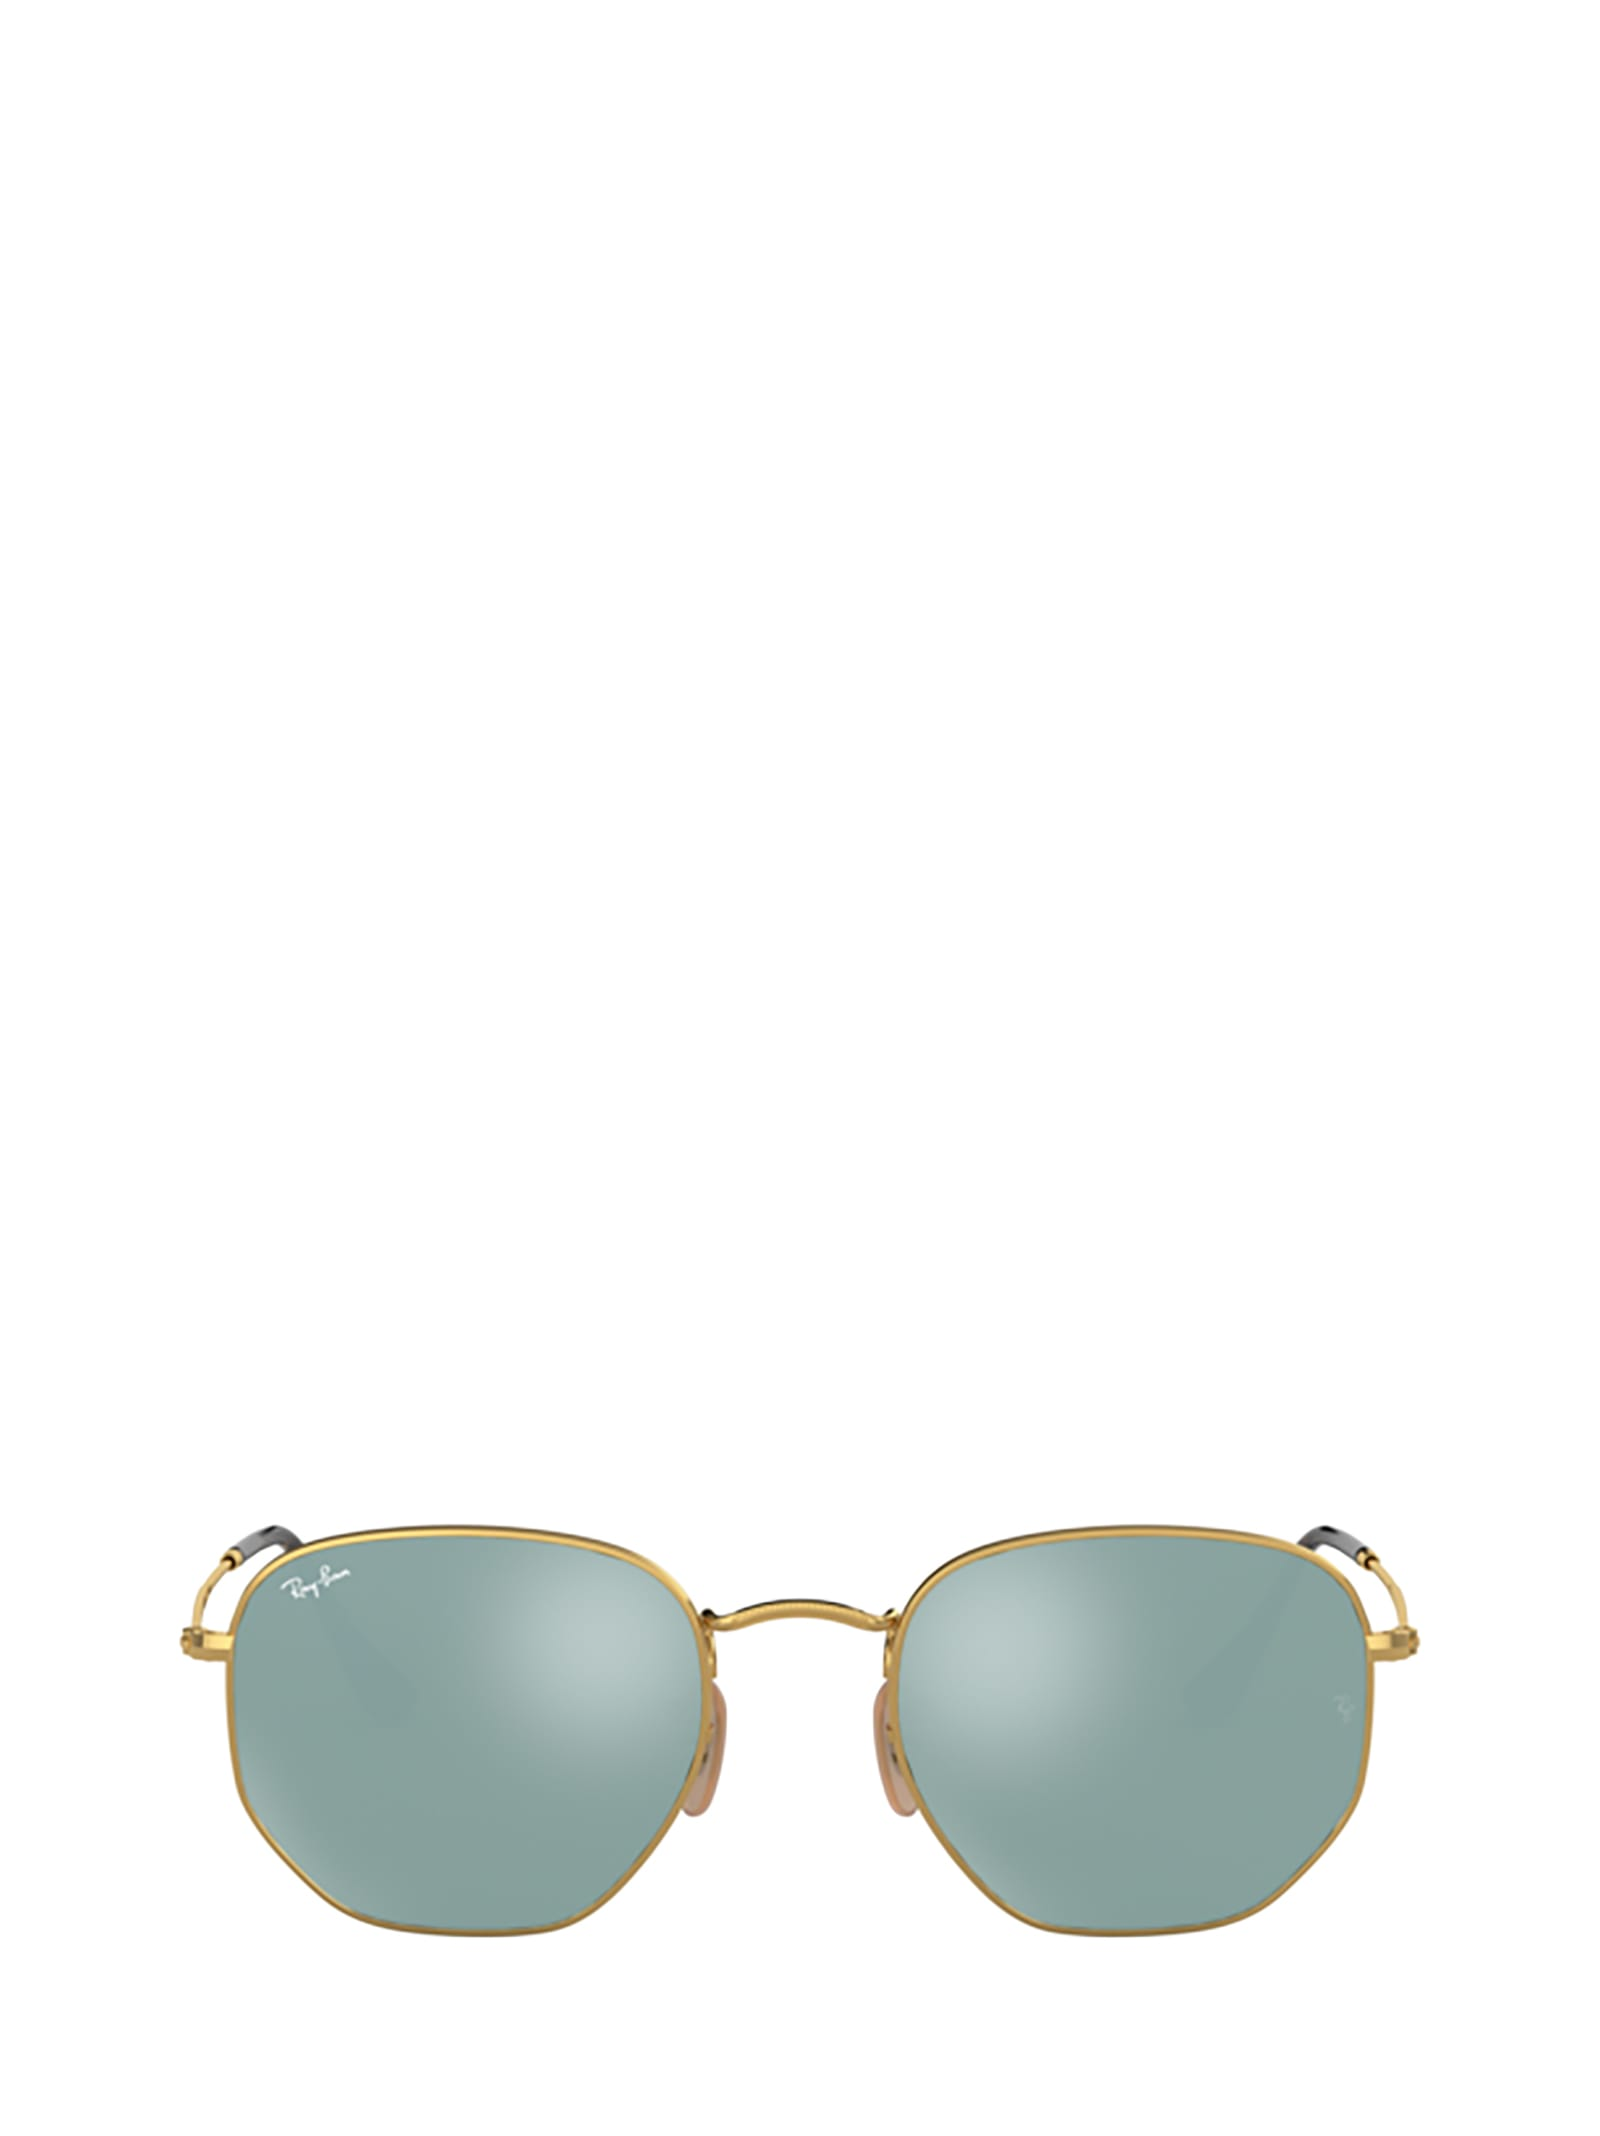 Ray-Ban Ray-ban Rb3548n Arista Sunglasses